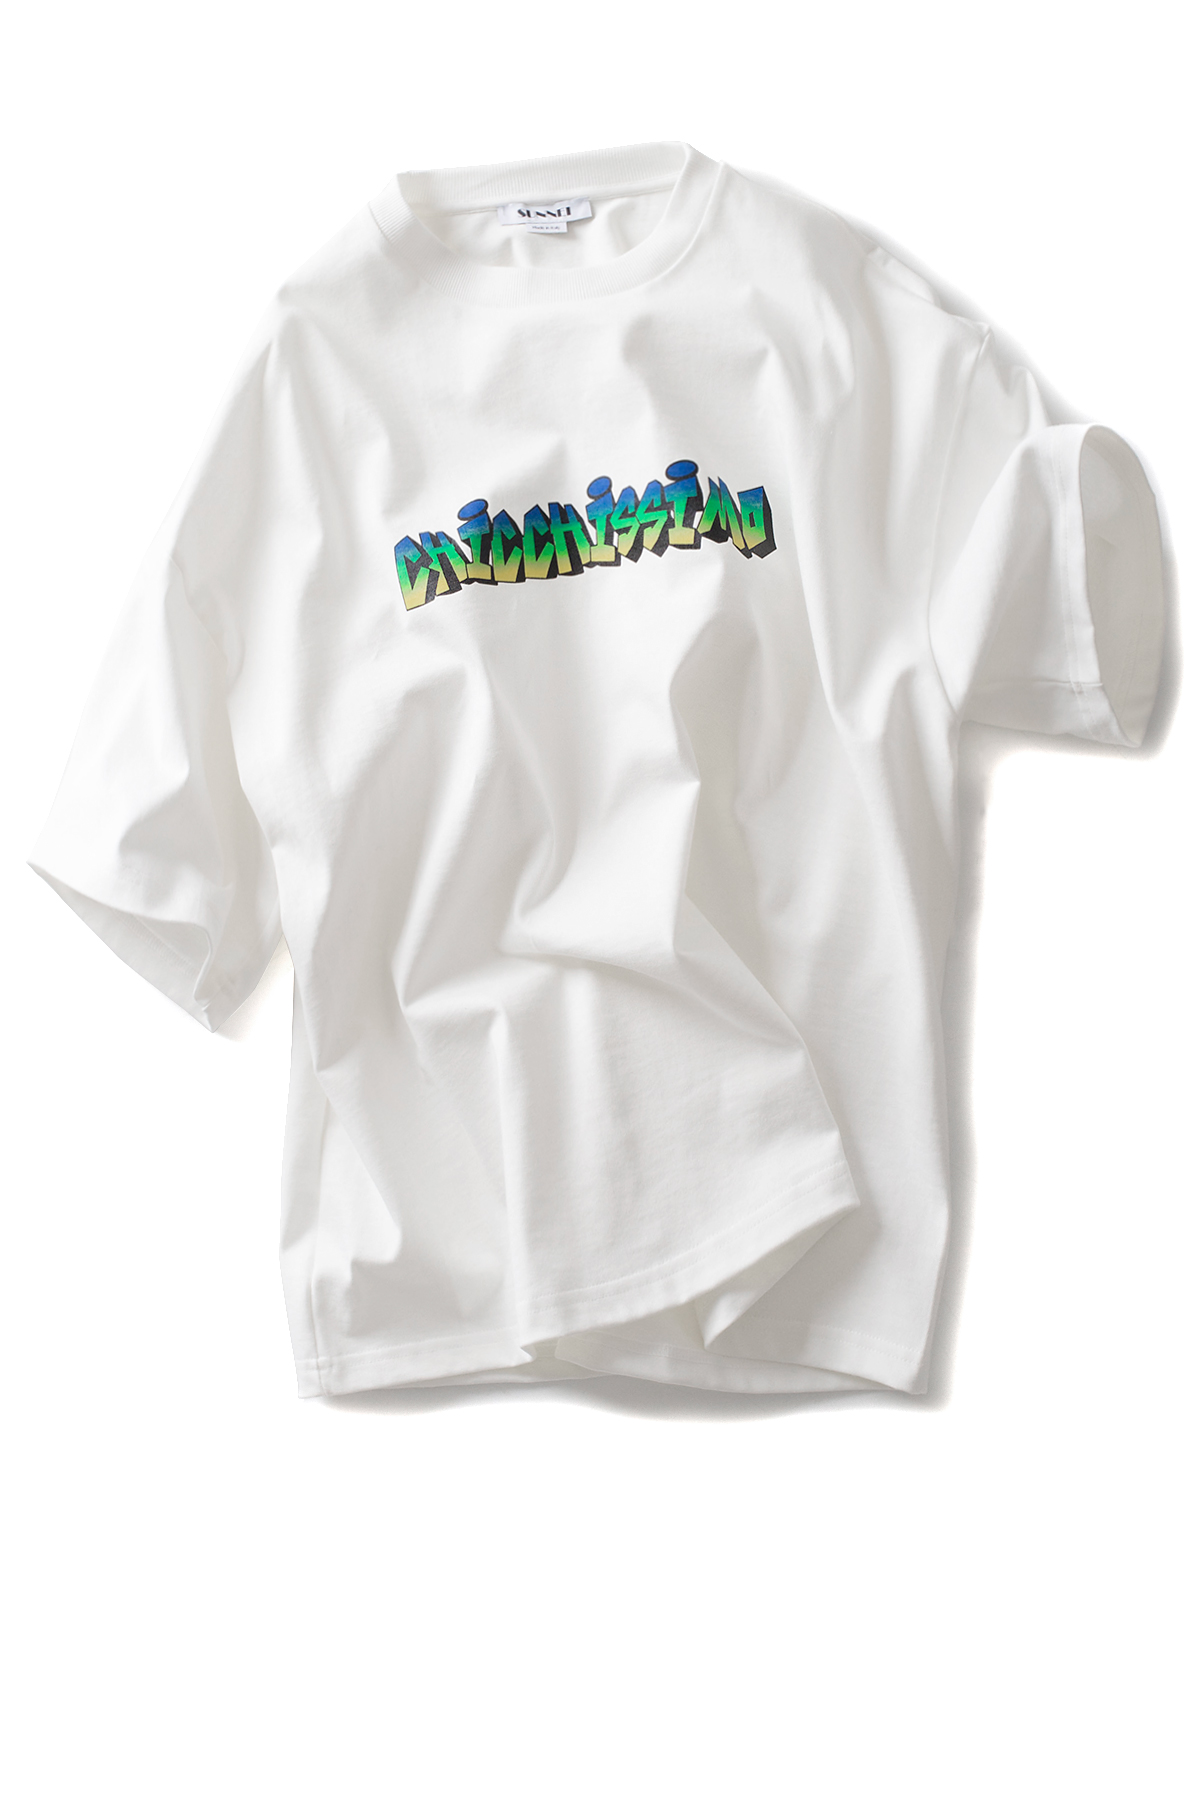 SUNNEI : Sweat T-Shirt Over Chichissimo (White)